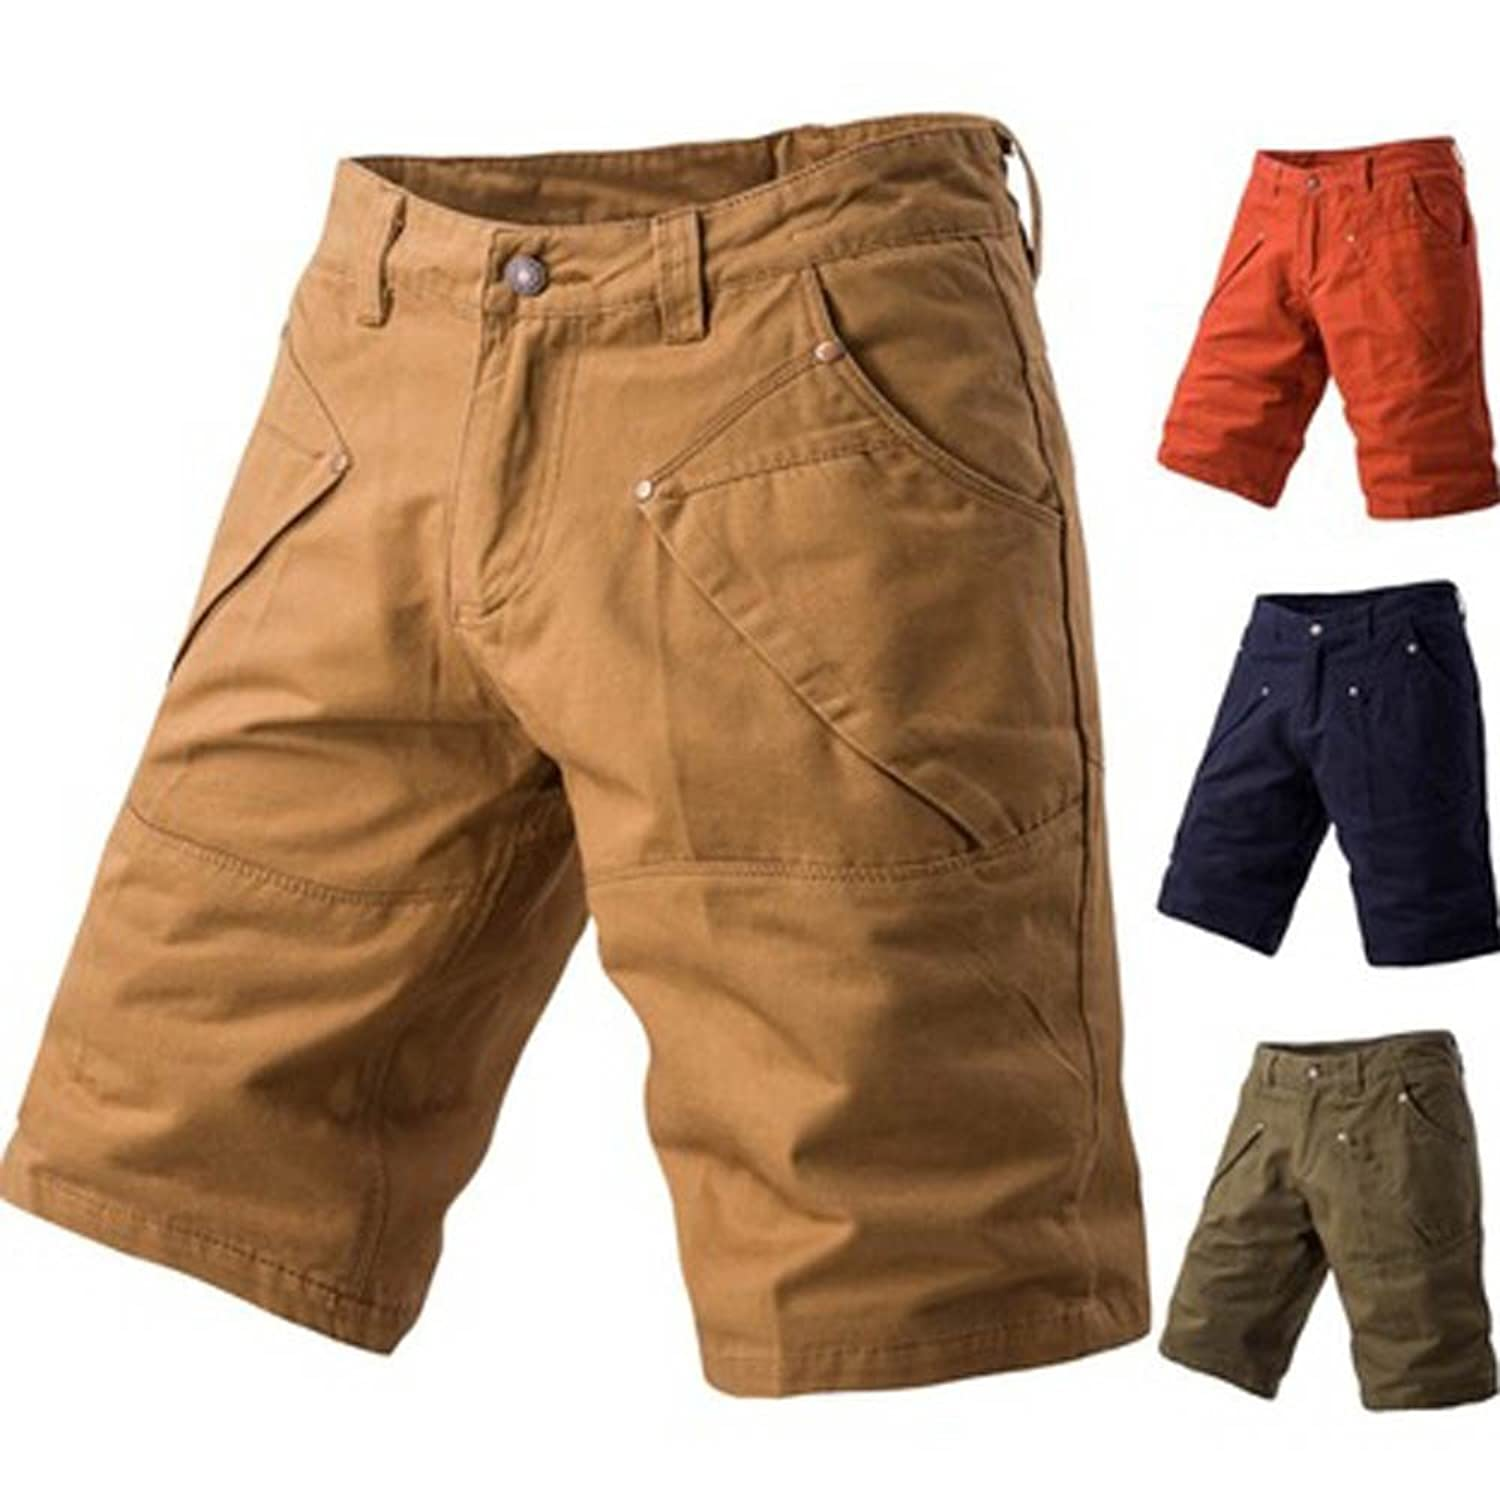 075a72bd7b Online Cheap wholesale vermers Clearance Sale Fashion Mens Cargo Shorts  Summer Casual Pocket Work Short Pants Trousers Shorts Suppliers